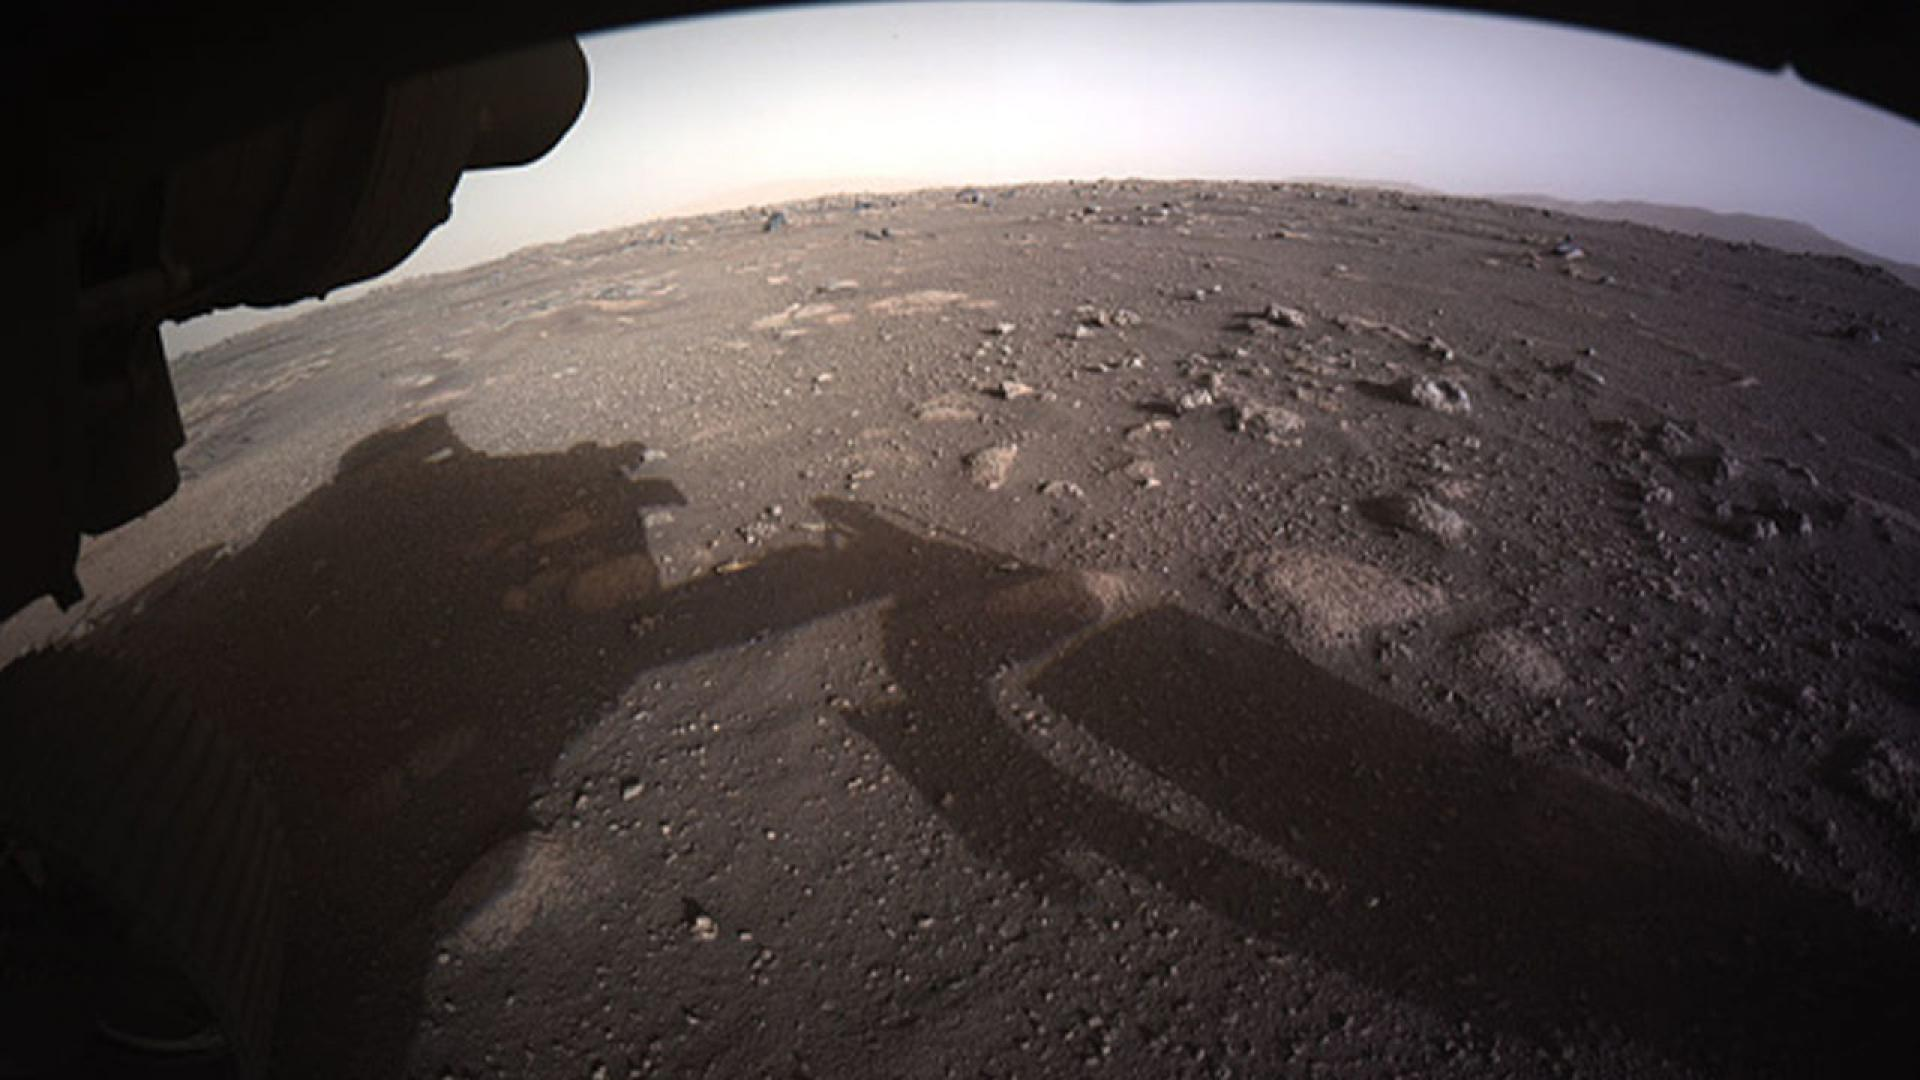 Perseverance landed on the surface of the red planet on February 18.